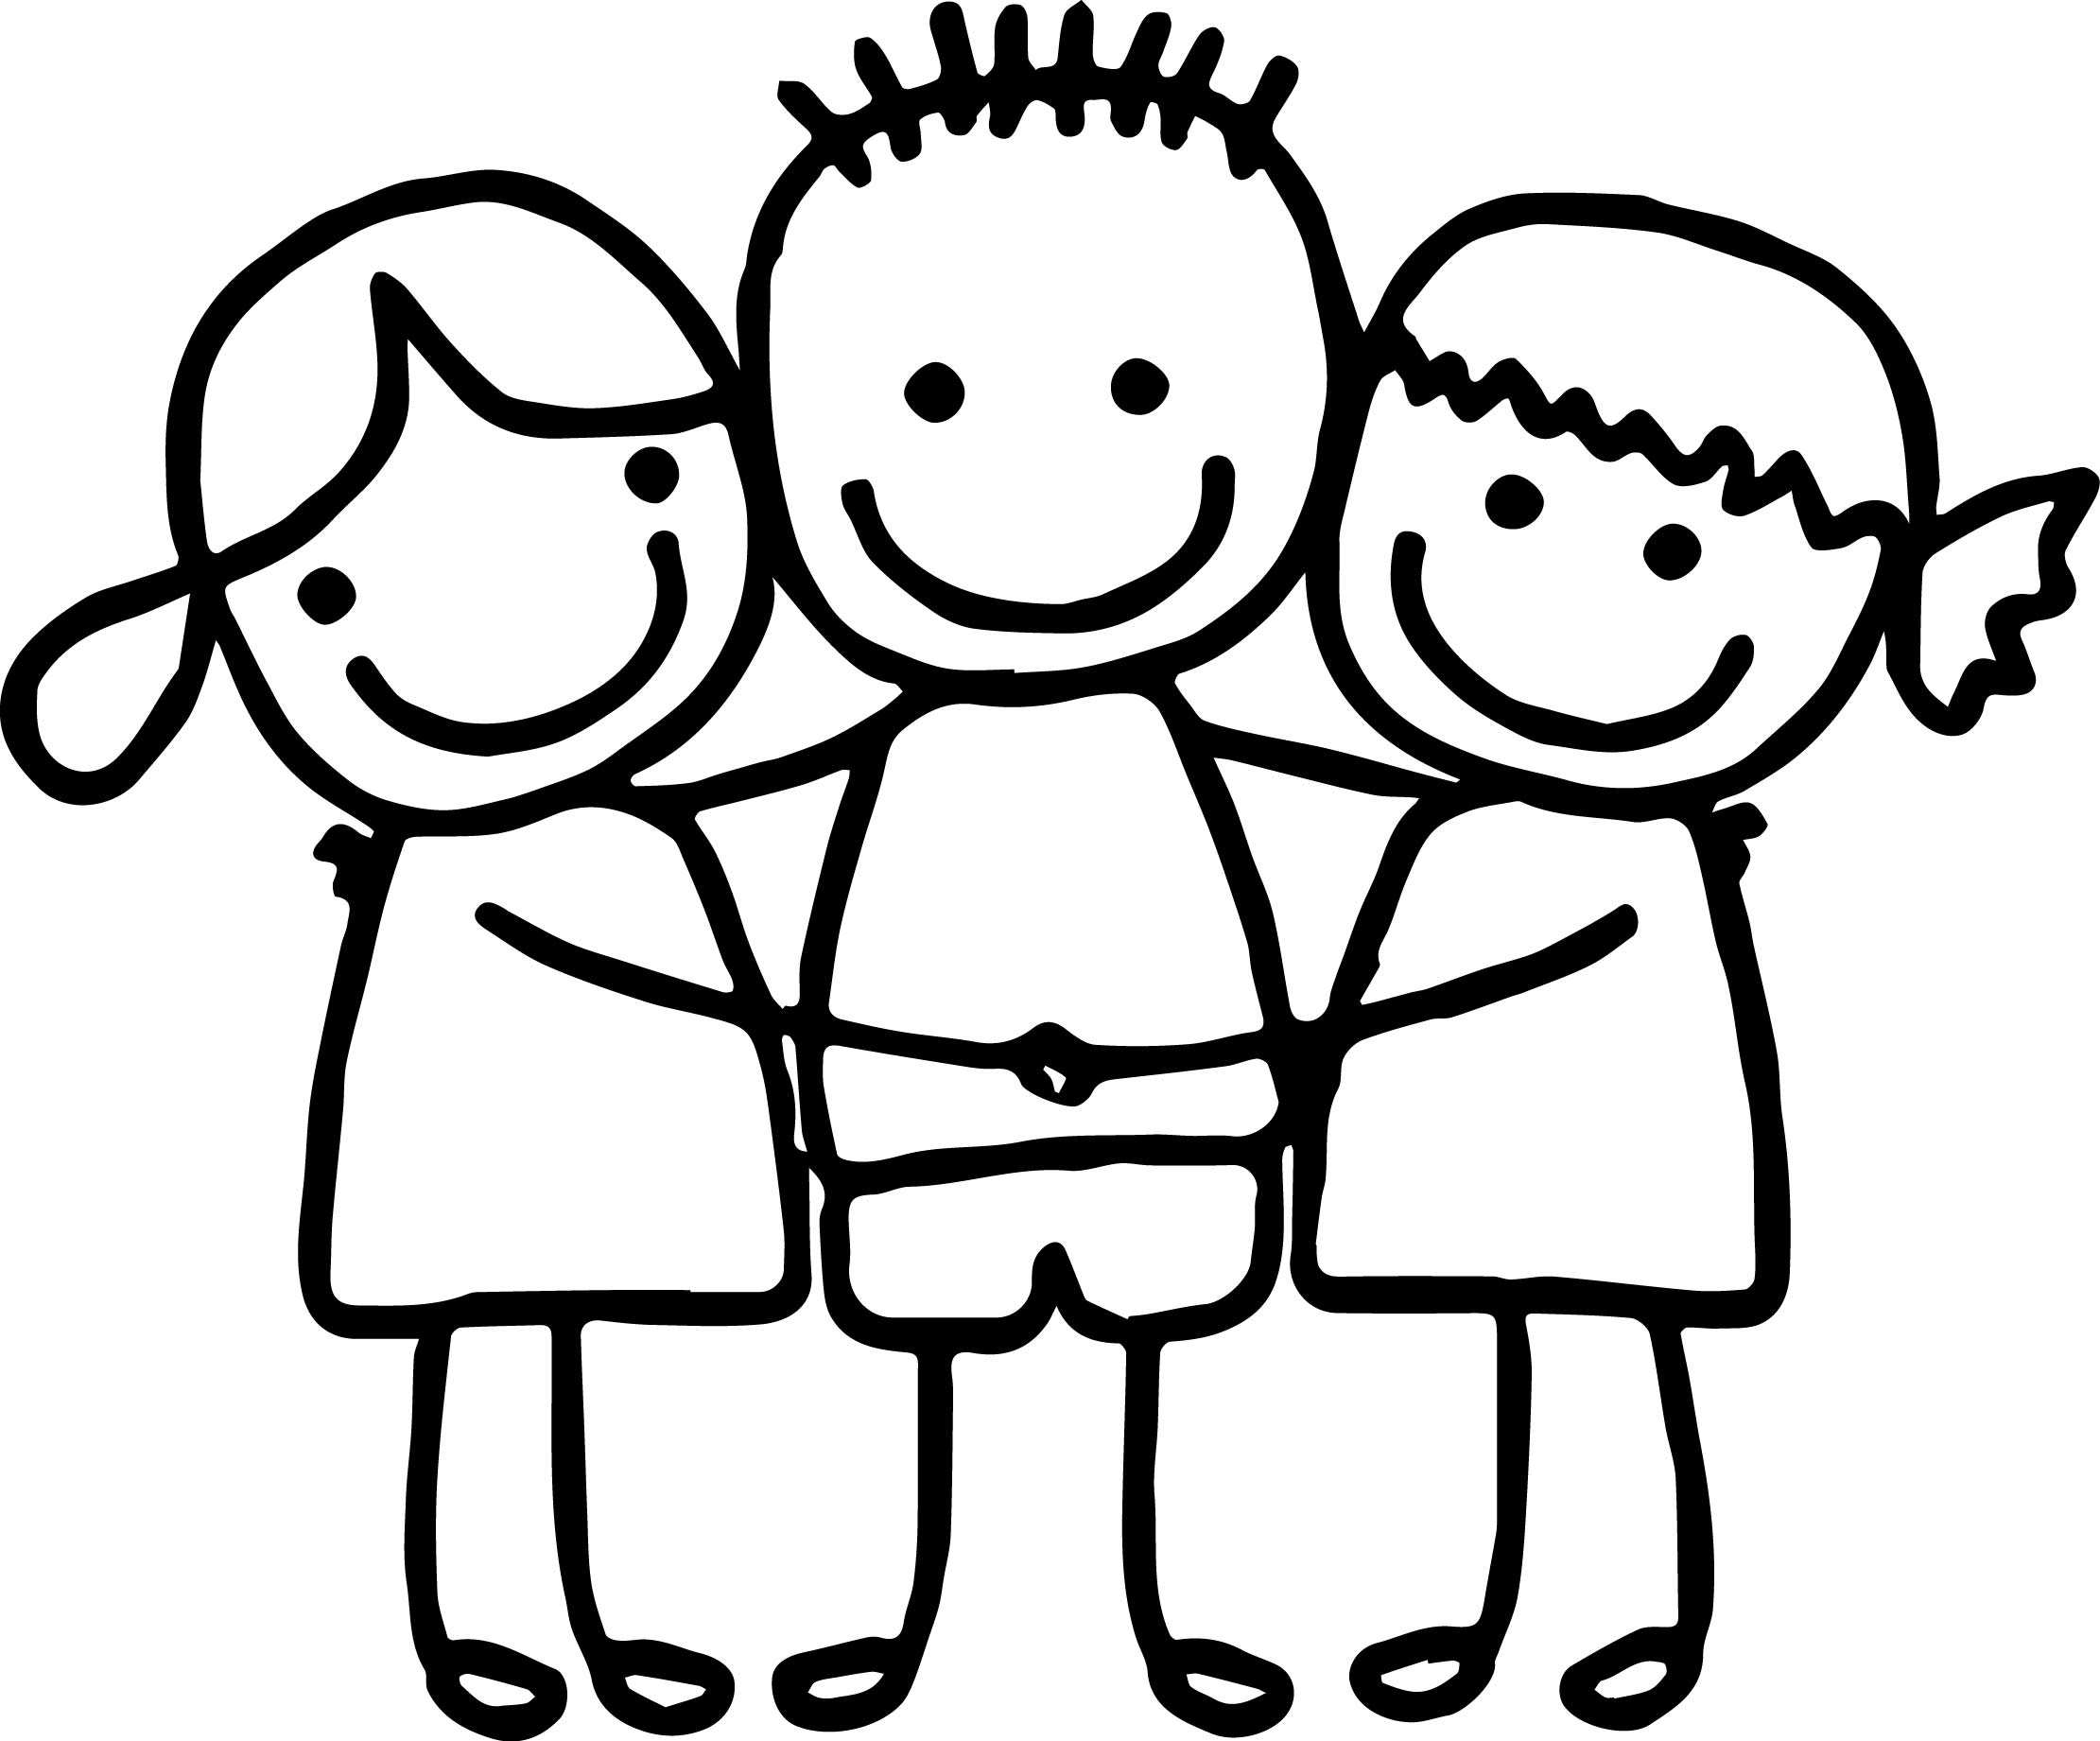 coloring pages best friends having fun with my bestfriend on friendship day coloring best pages coloring friends